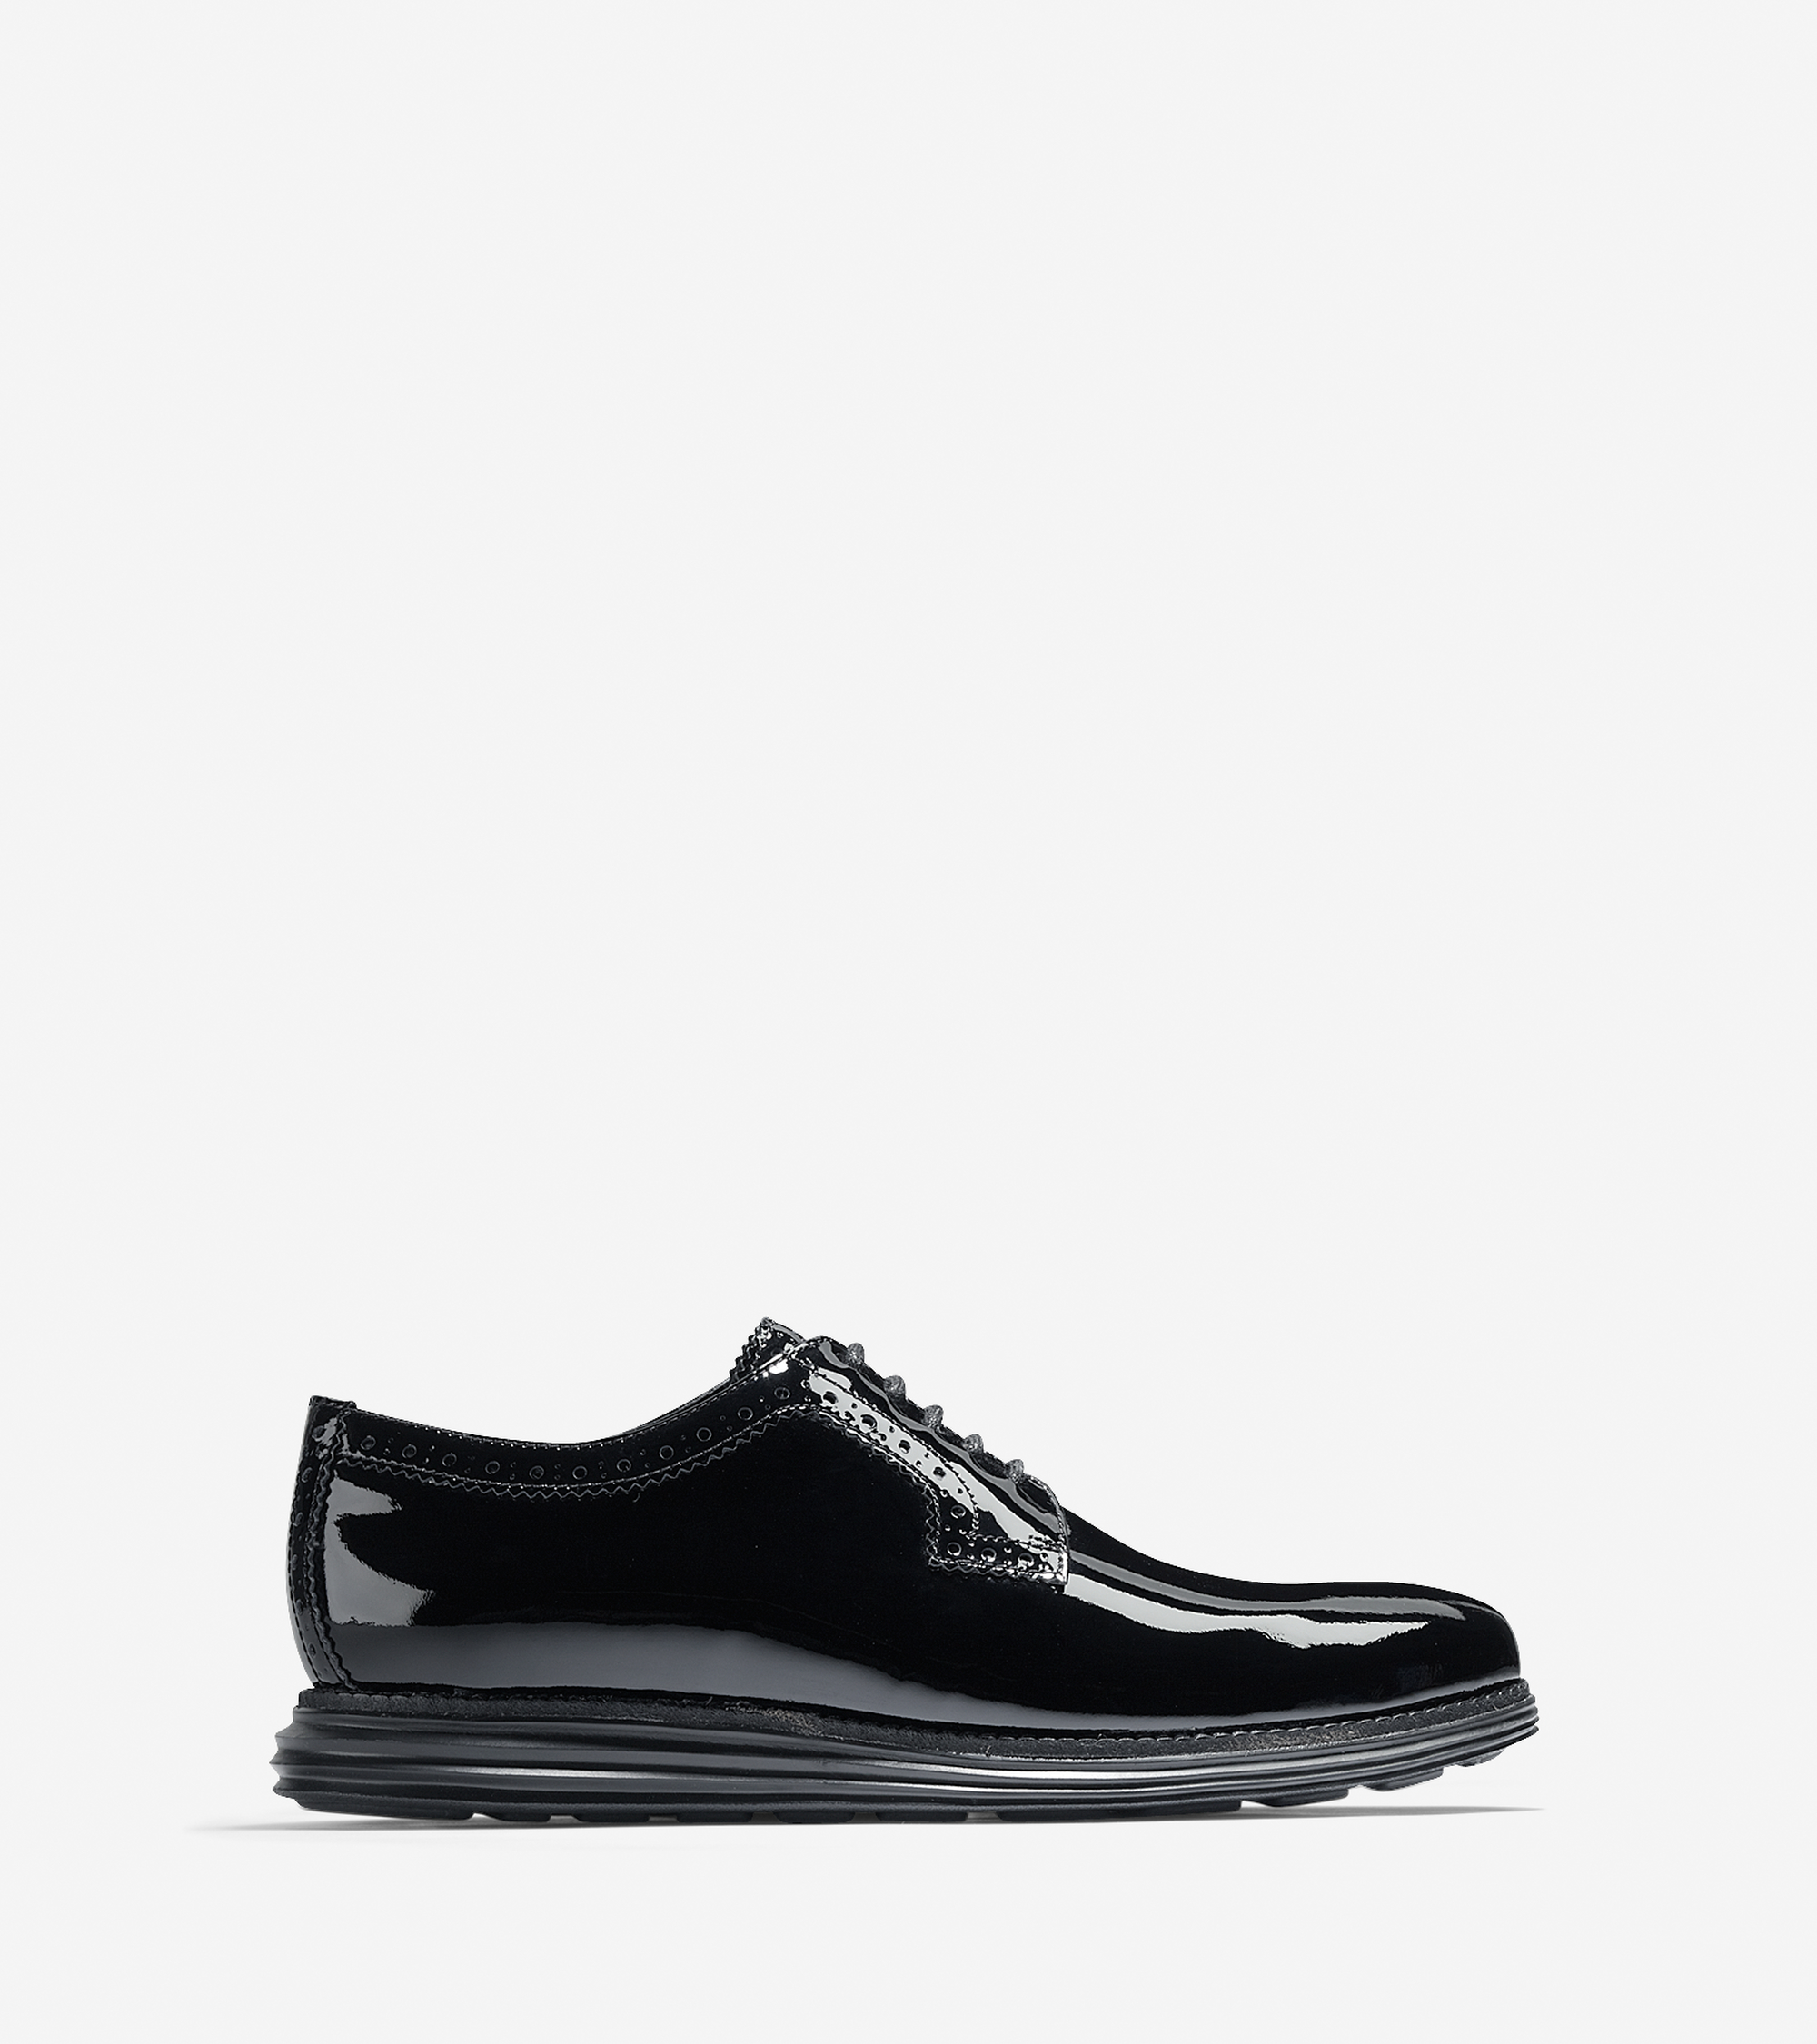 Black Cole Haan Lunargrand December 2017